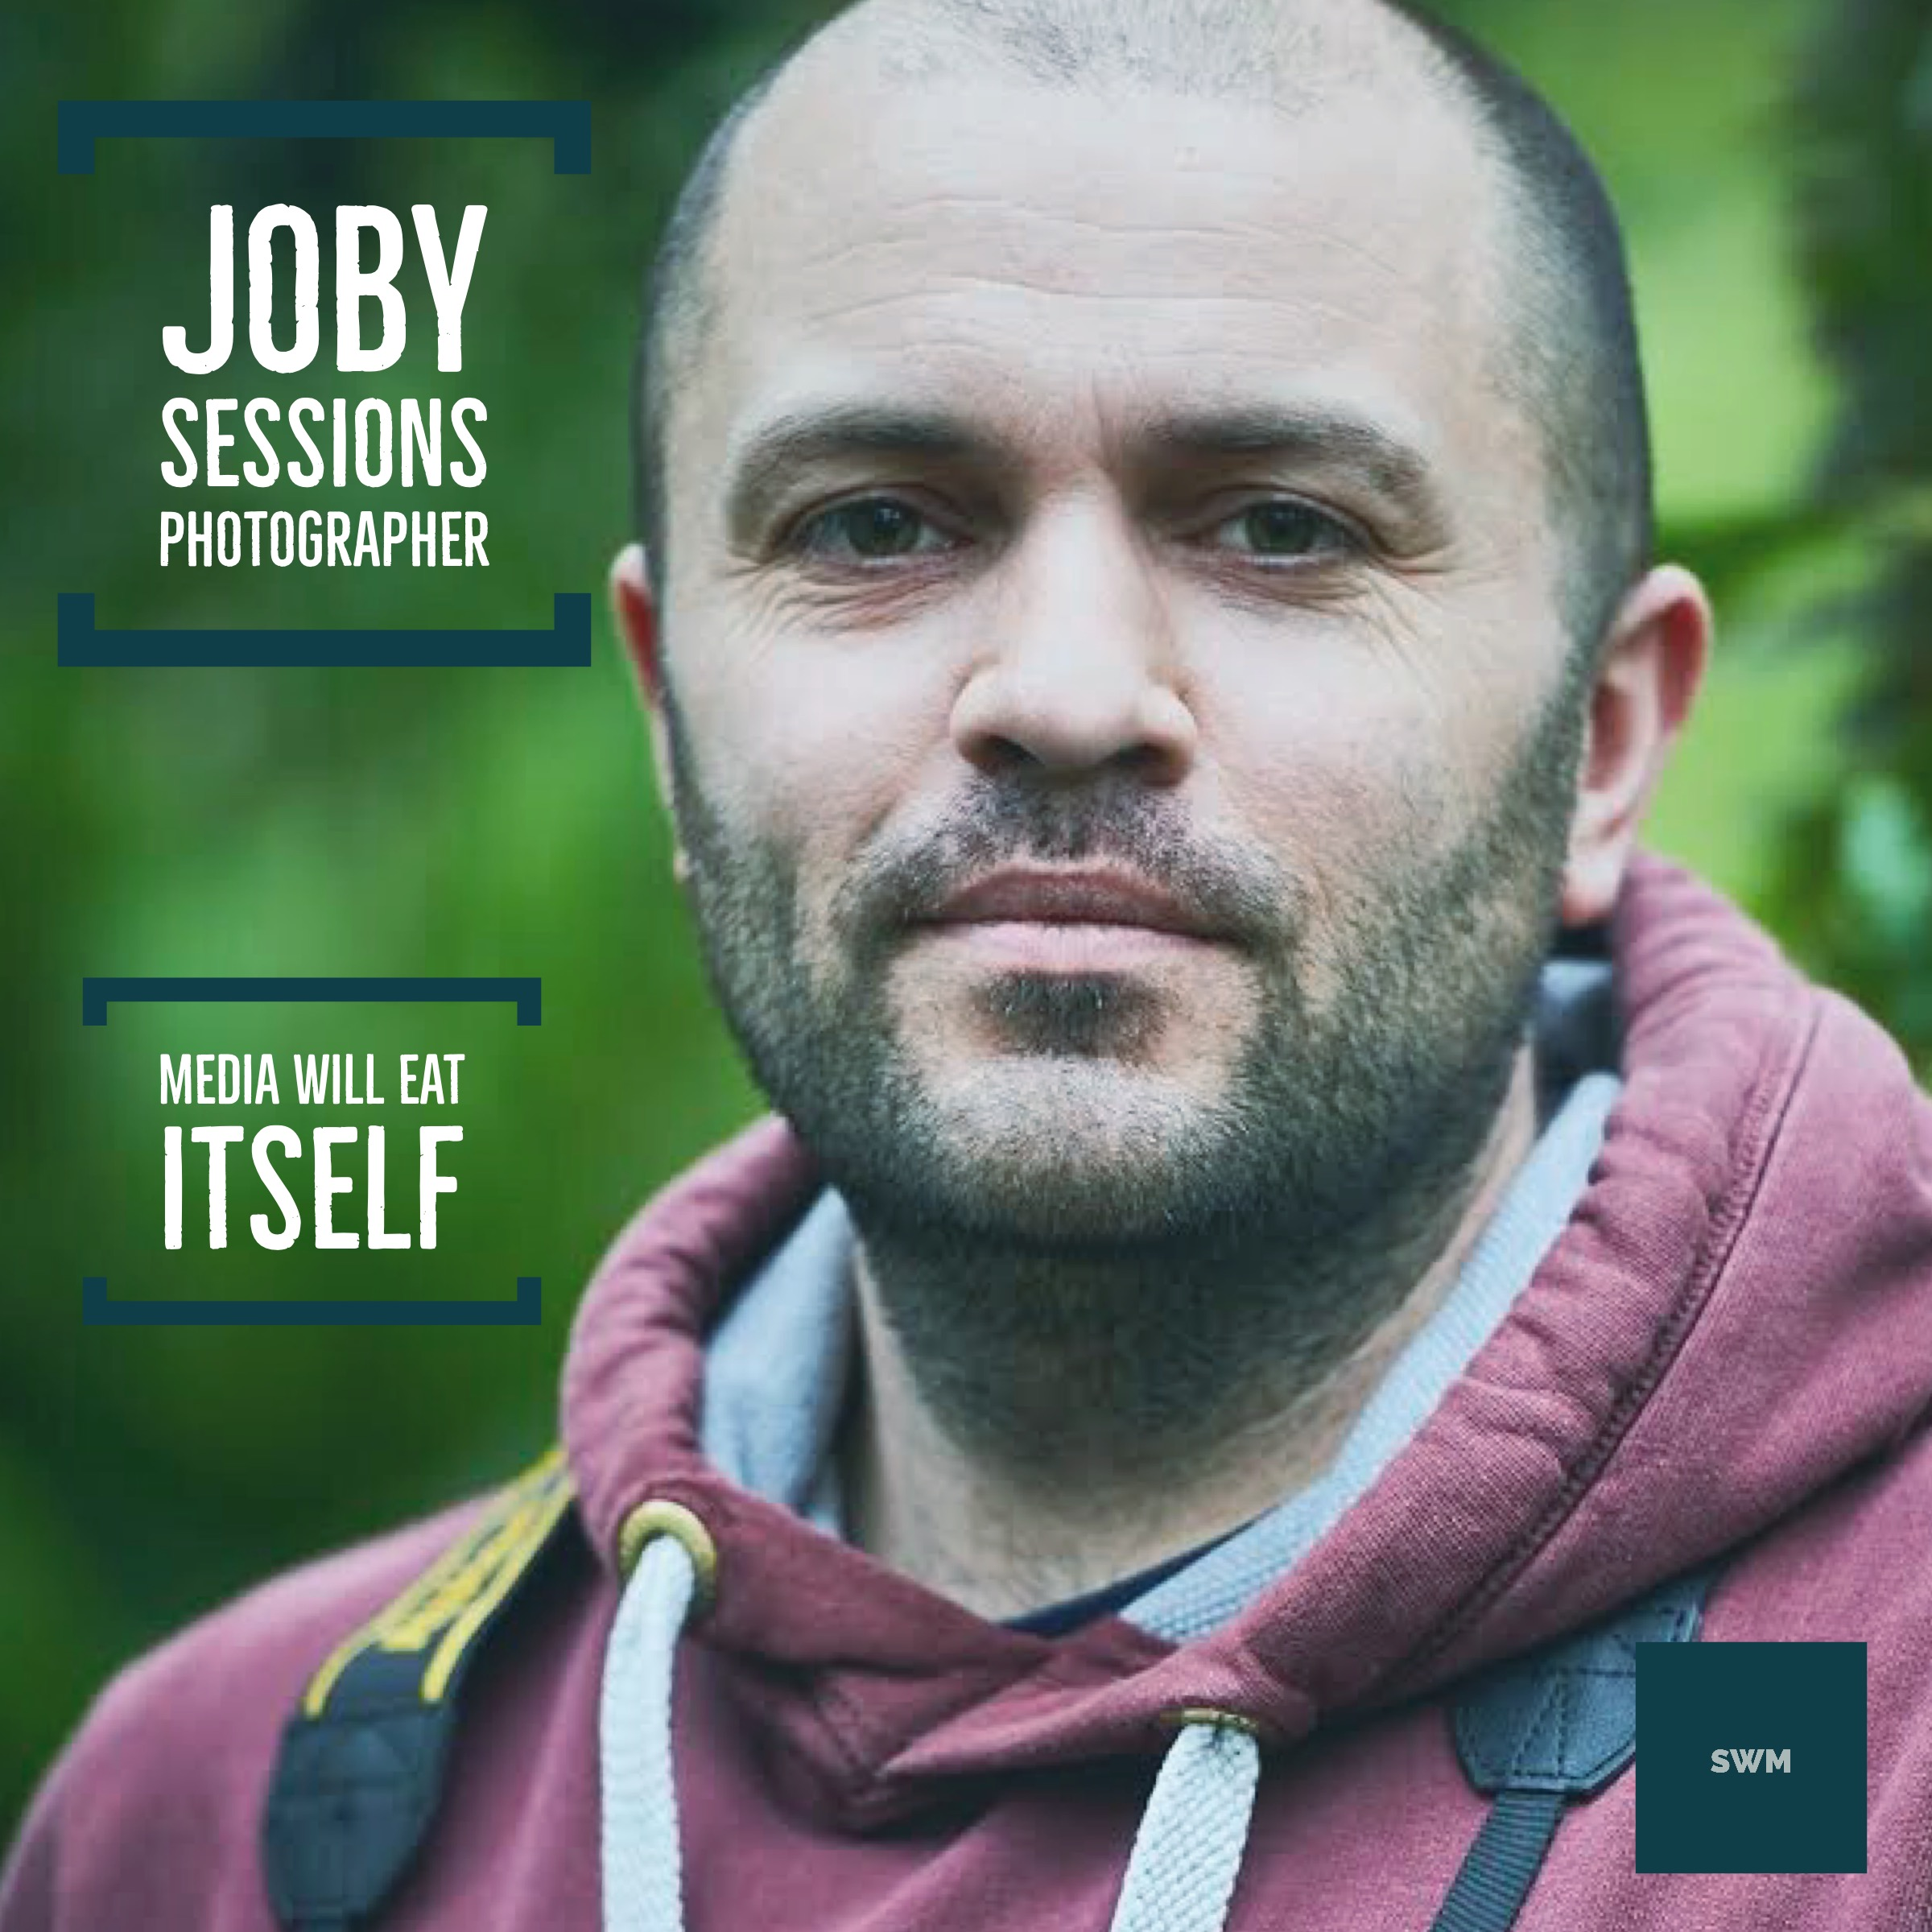 Modern photography, with Joby Sessions